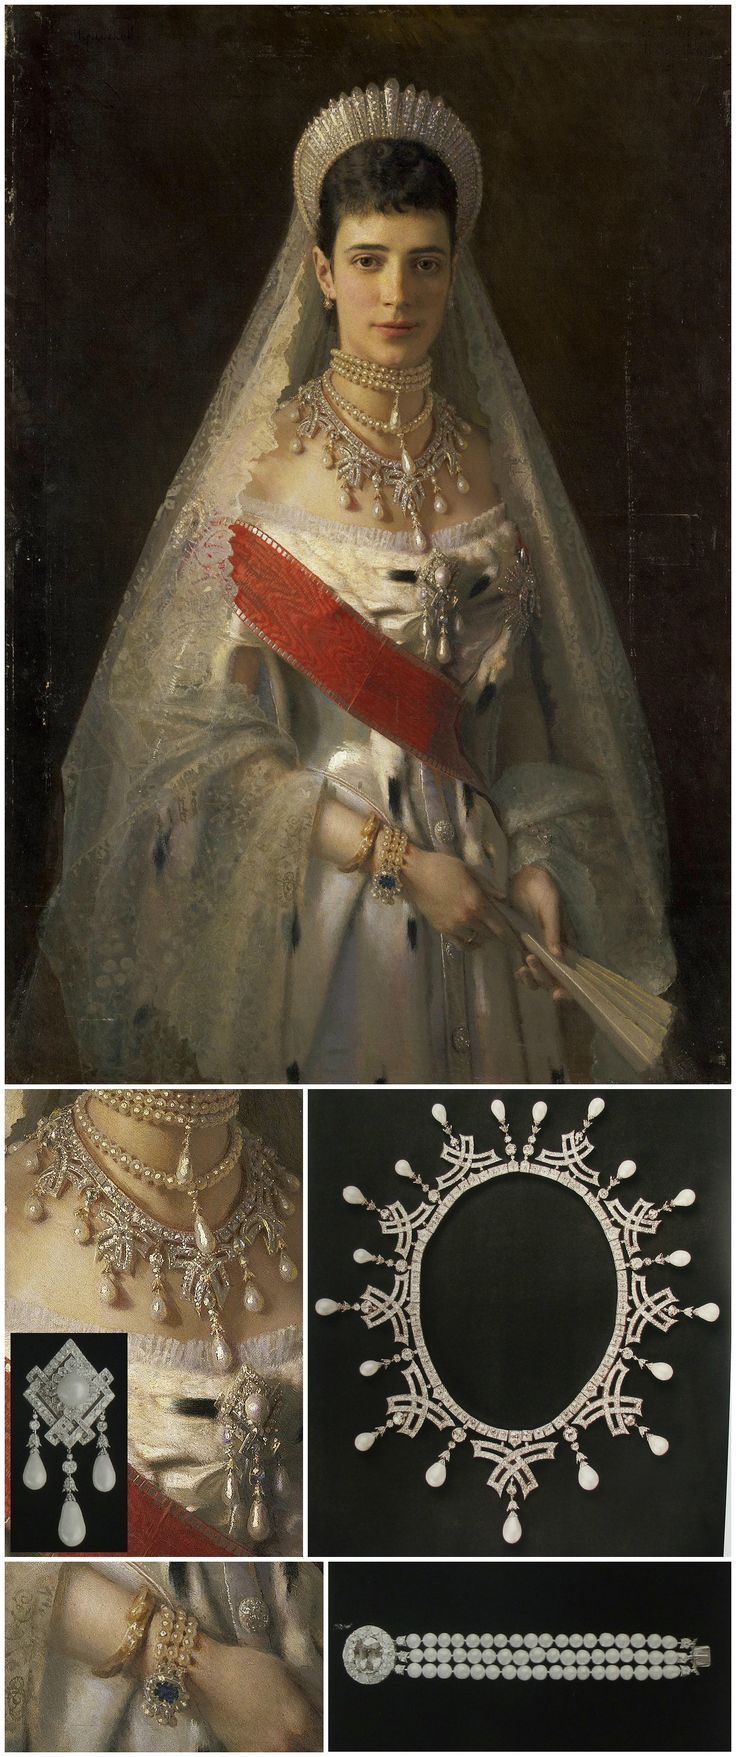 Necklace, brooch and bracelet, all worn by Empress Maria Fyodorovna, as seen in a portrait by Ivan Kramskoy, dated 1881, in the collection of the State Hermitage Museum. The necklace and brooch are from a parure created for Maria Fyodorovna in the early 1880s. Images of the jewels via Elena Horvathova on LiveJournal (http://eho-2013.livejournal.com/62382.html). CLICK FOR LARGER PICTURES.